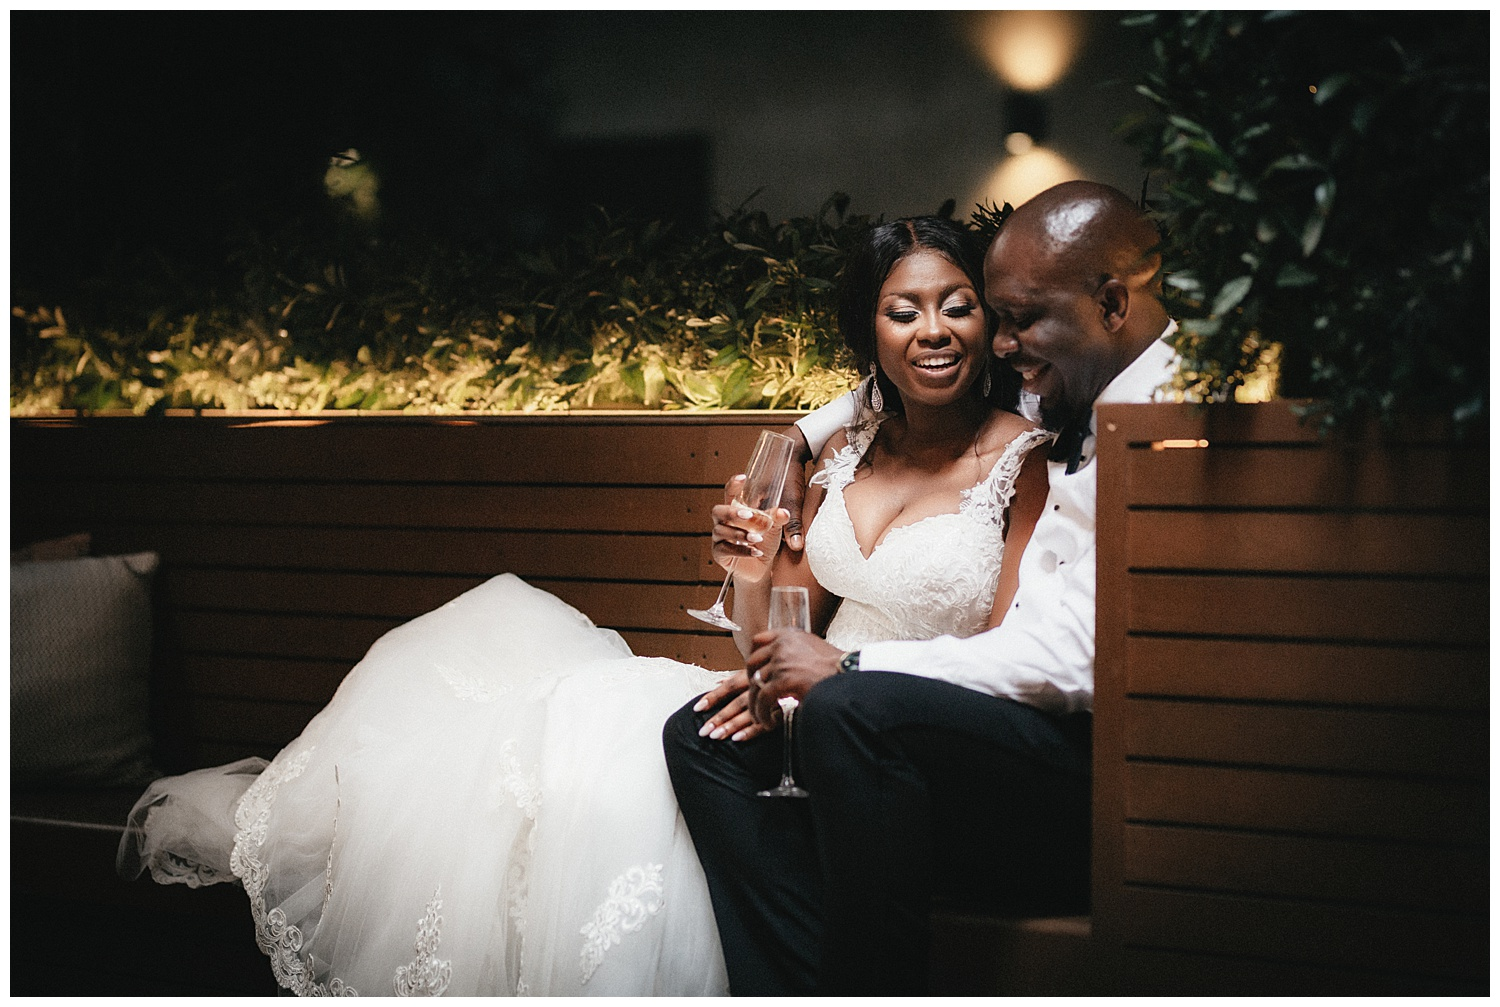 London Wedding Photographer - the couple cosy up together on a bench